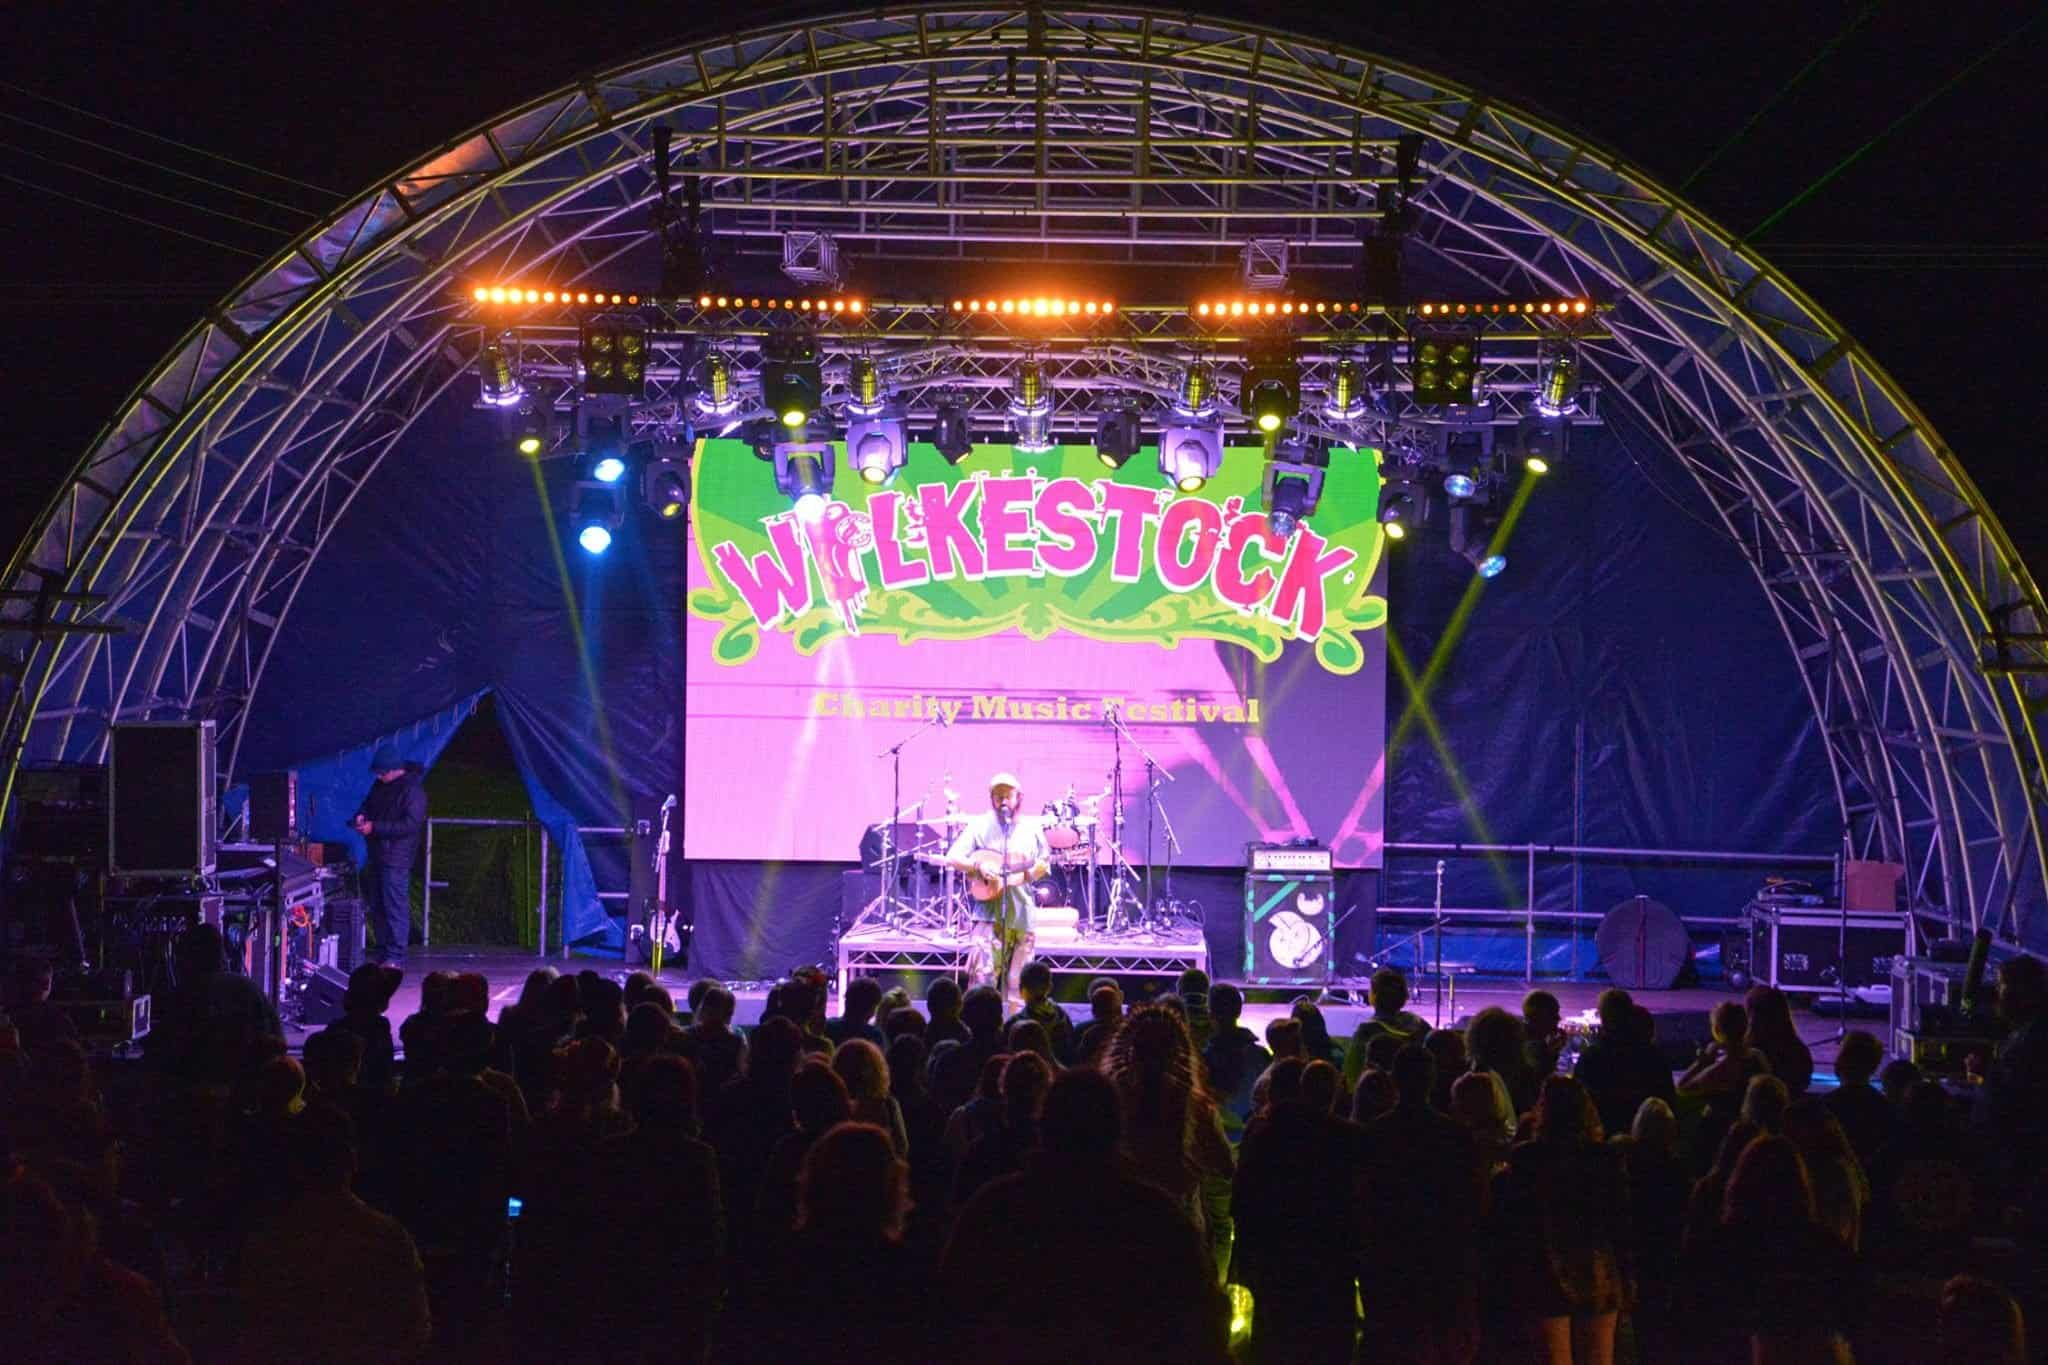 Wilkestock Charity Festival 2016 Vortex Events Ltd